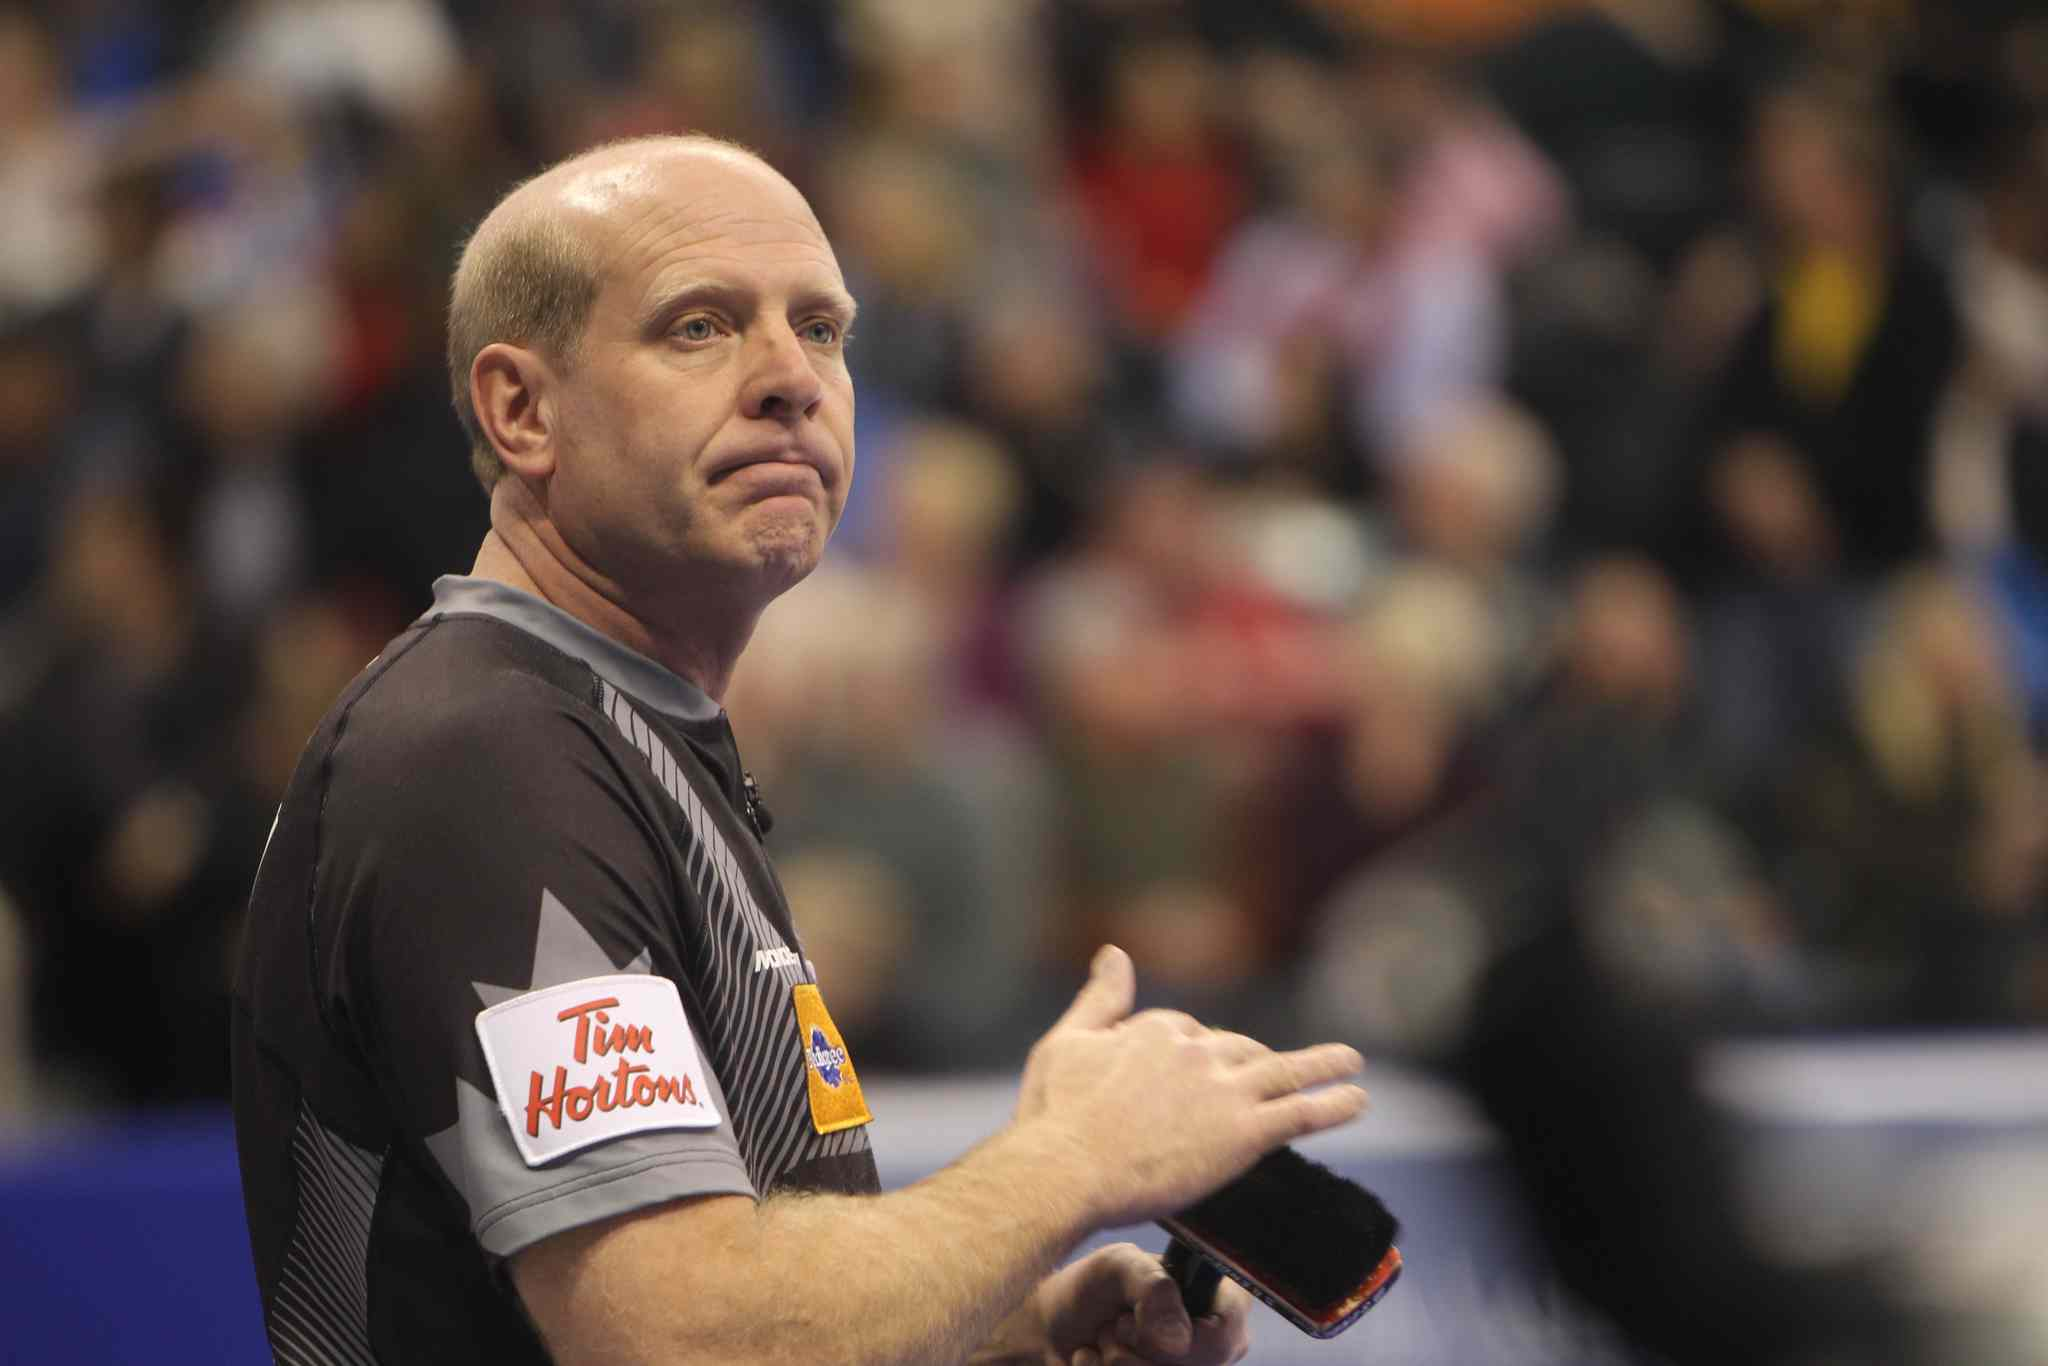 Skip Kevin Martin has little to smile about after losing 7-5 to former teammate John Morris in the Roar of the Rings Olympic curling trials men's semifinal at the MTS Centre Saturday.